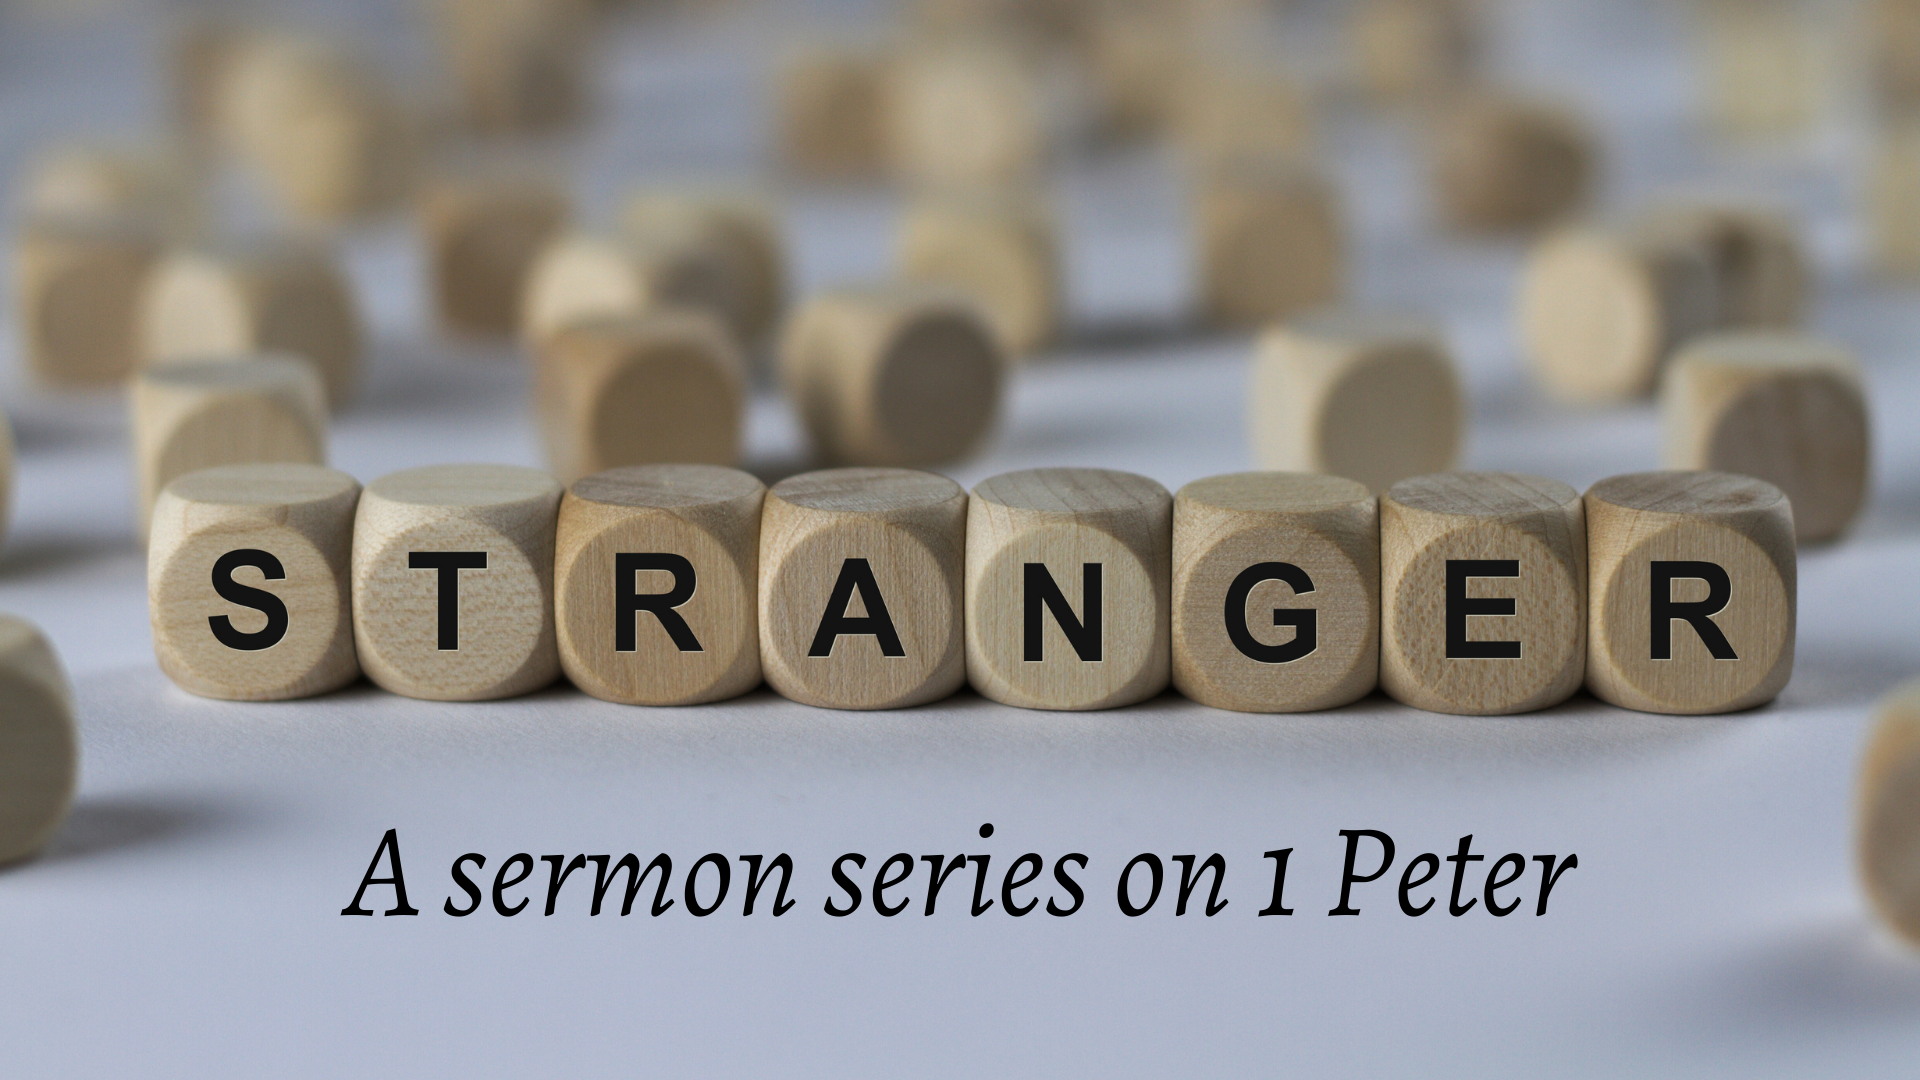 Stranger: A sermon series on 1 Peter